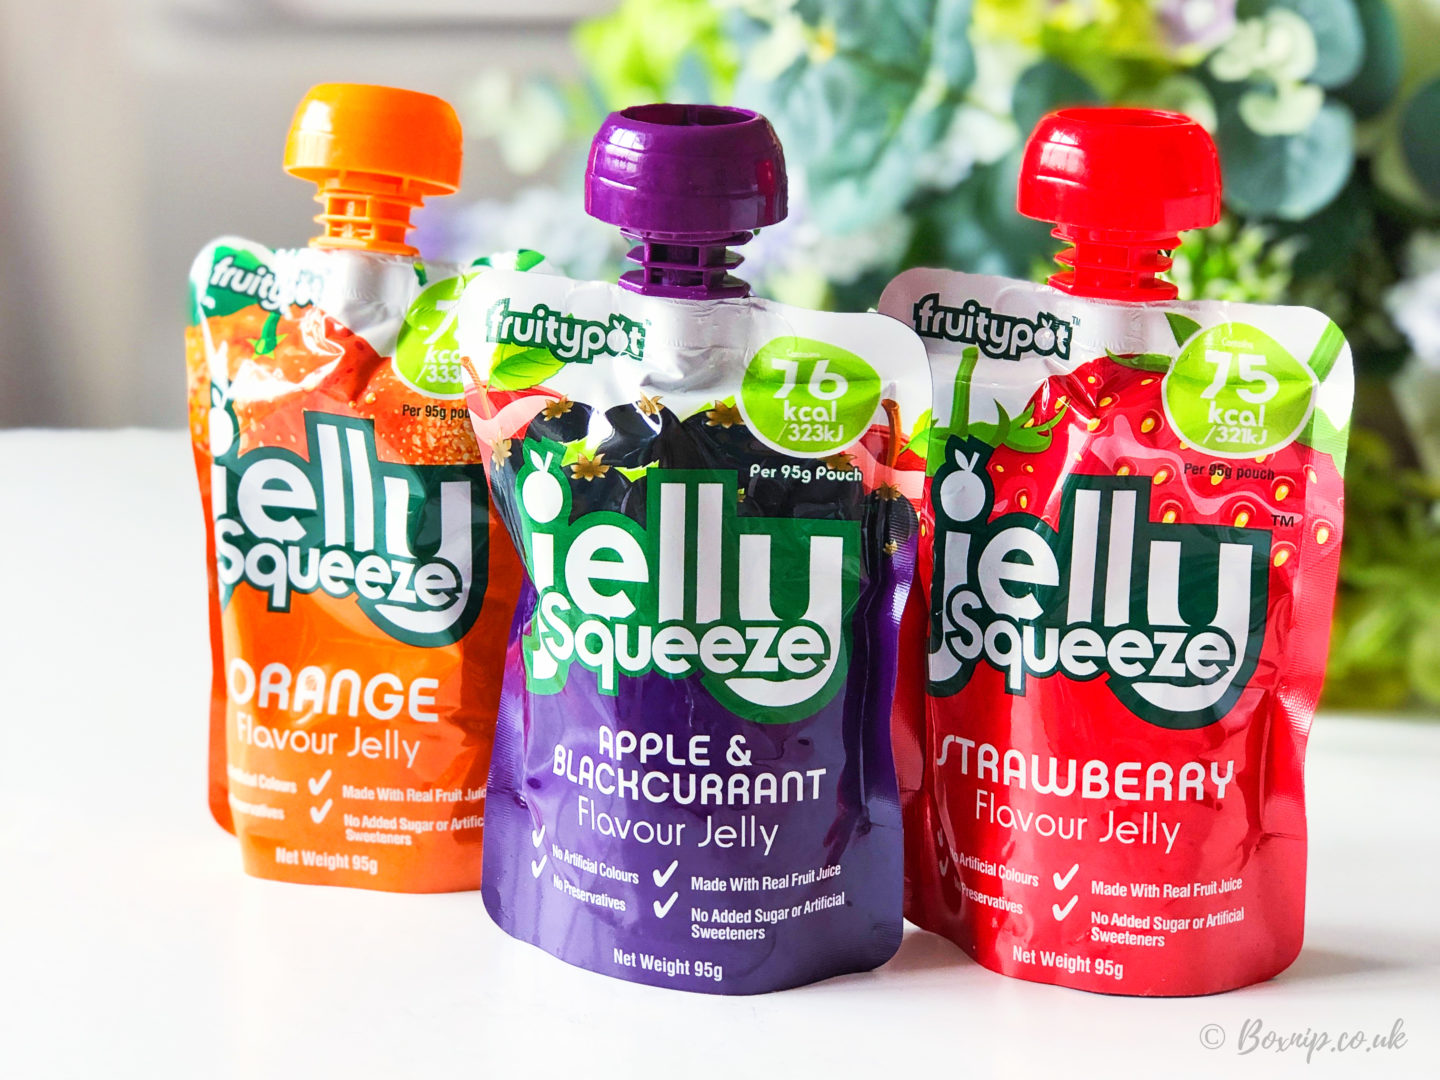 JellySqueeze Jelly Pouches - August 2019 Degusta Box